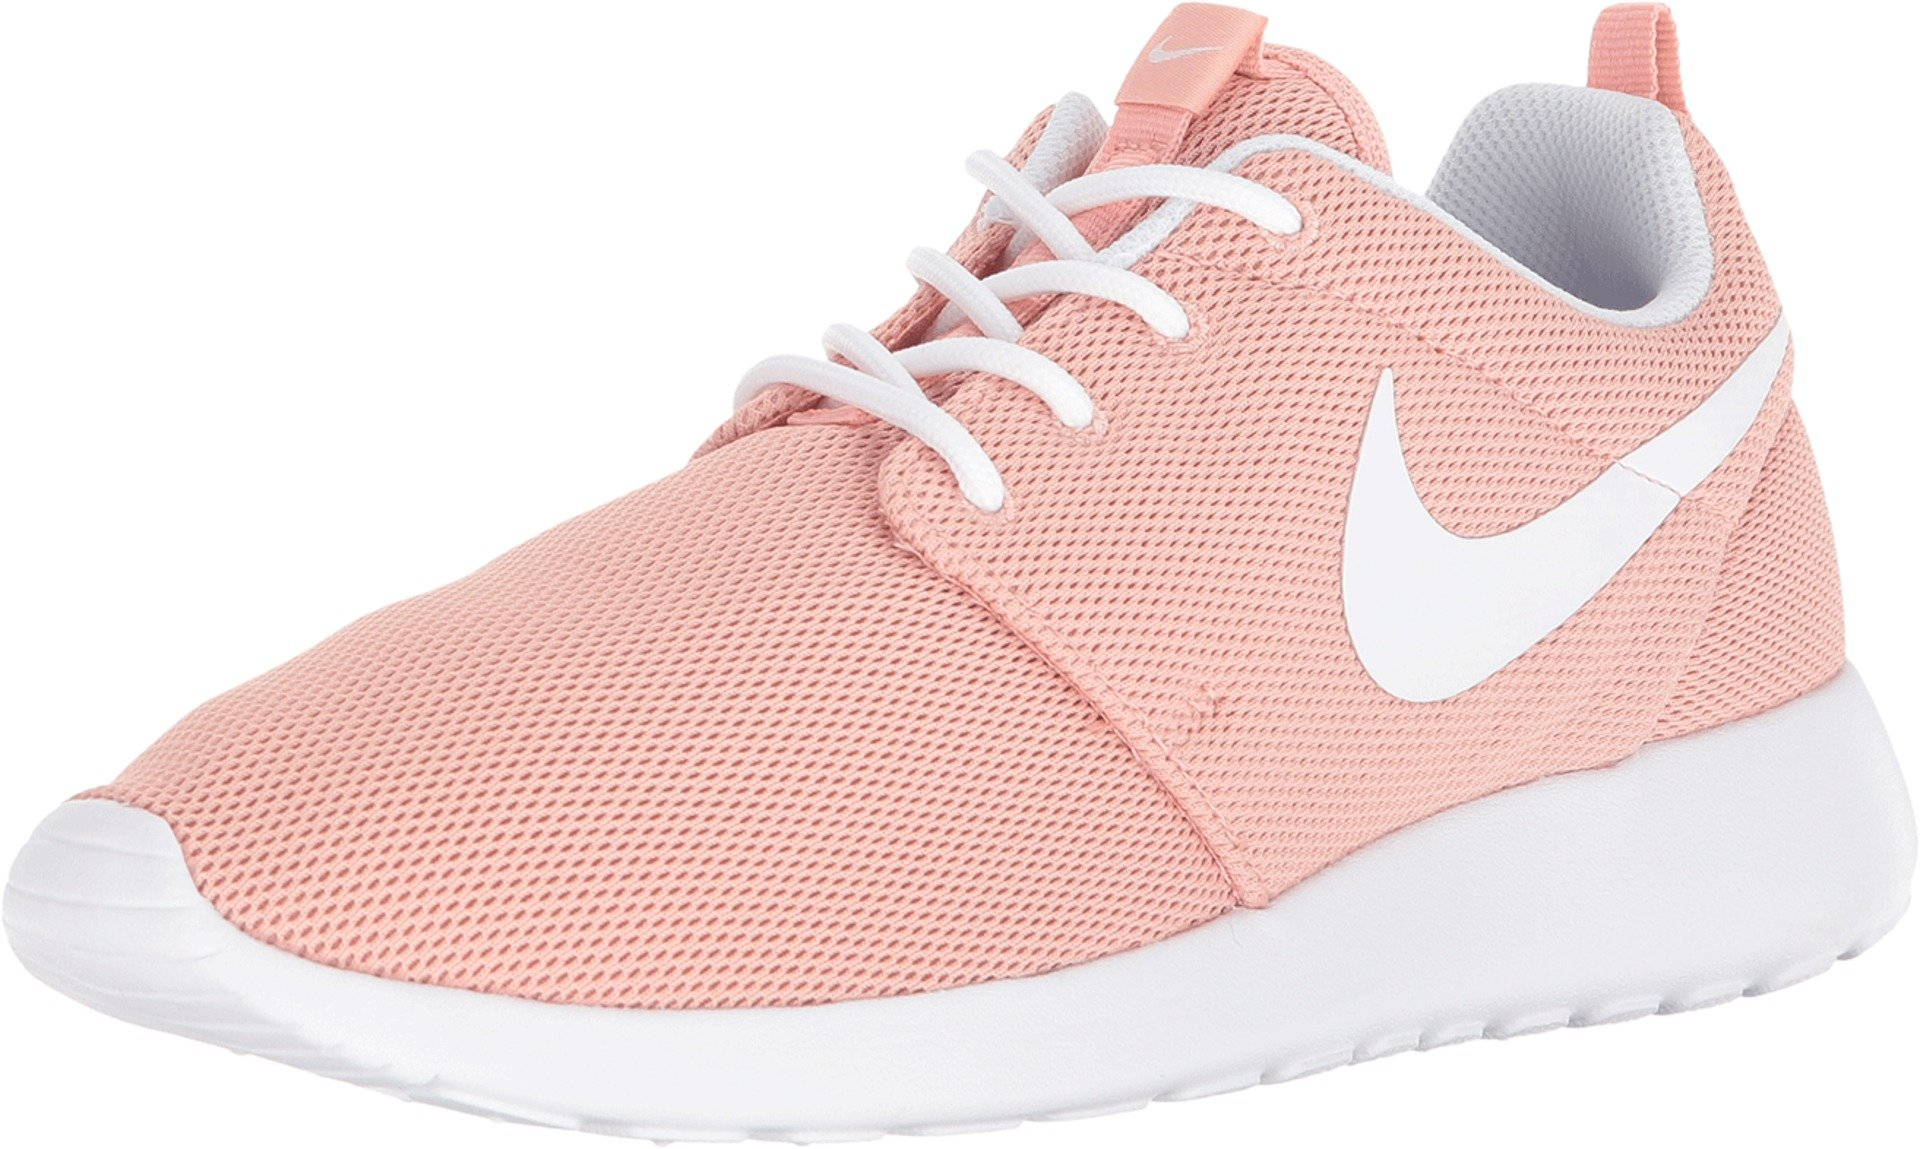 Aturdir enfermo Lima  Nike Women's Roshe One Coral Stardust/White Nylon Running Shoes 9 (B) M US  on Galleon Philippines